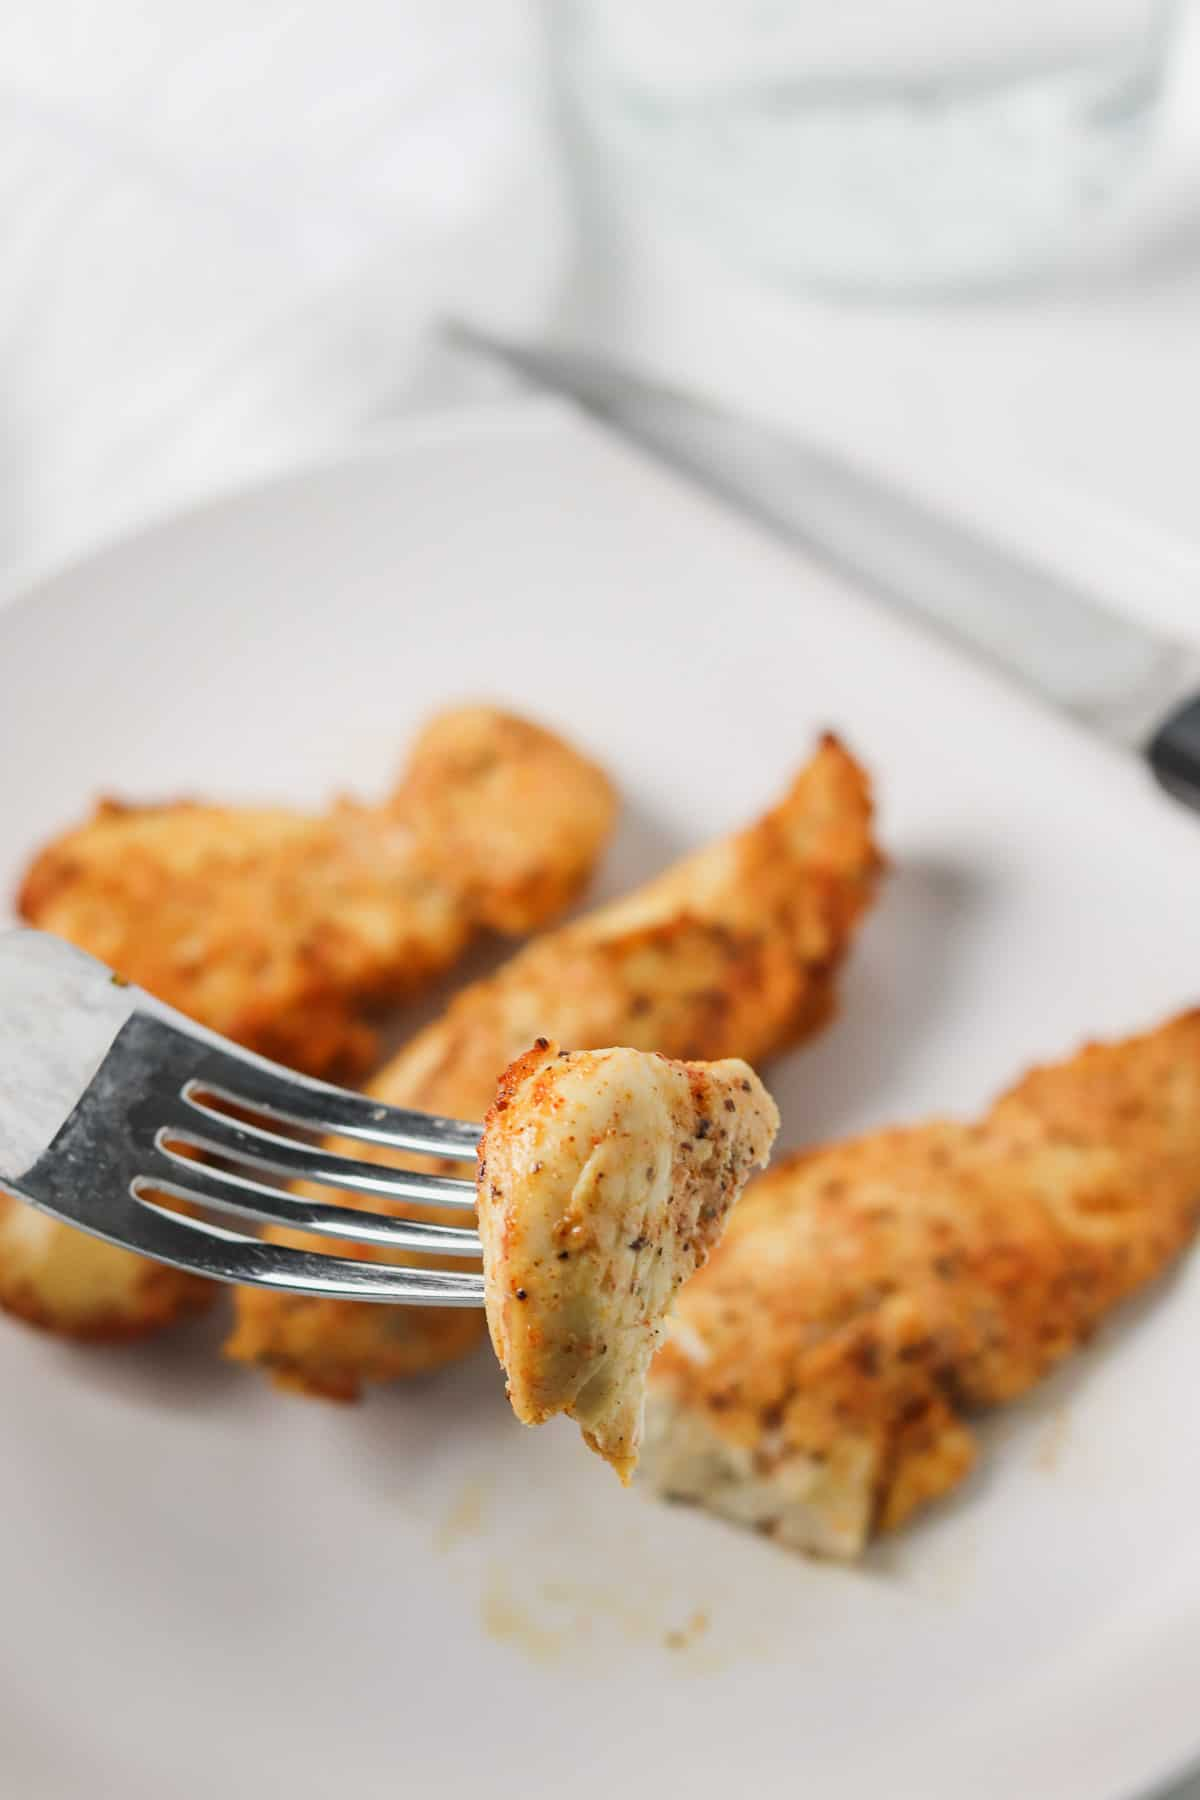 taking a bite of air fryer chicken tender with a fork